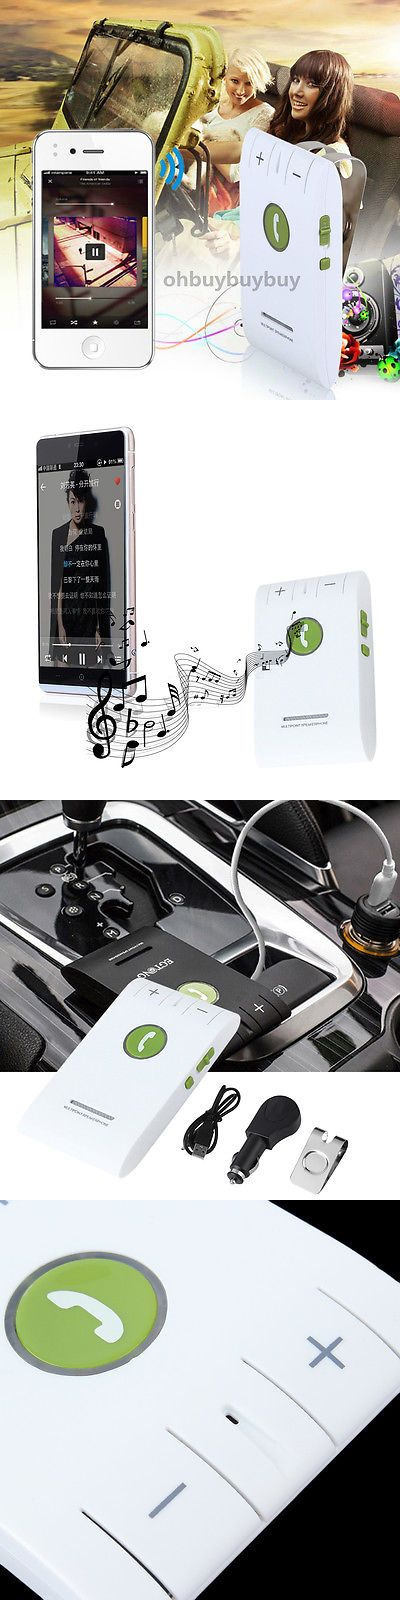 Bluetooth Handsfree Car Kits: Bluetooth Wireless Hands-Free Speaker Car Speaker Kit Visor Clip For Phone Usa Y -> BUY IT NOW ONLY: $44.55 on eBay!